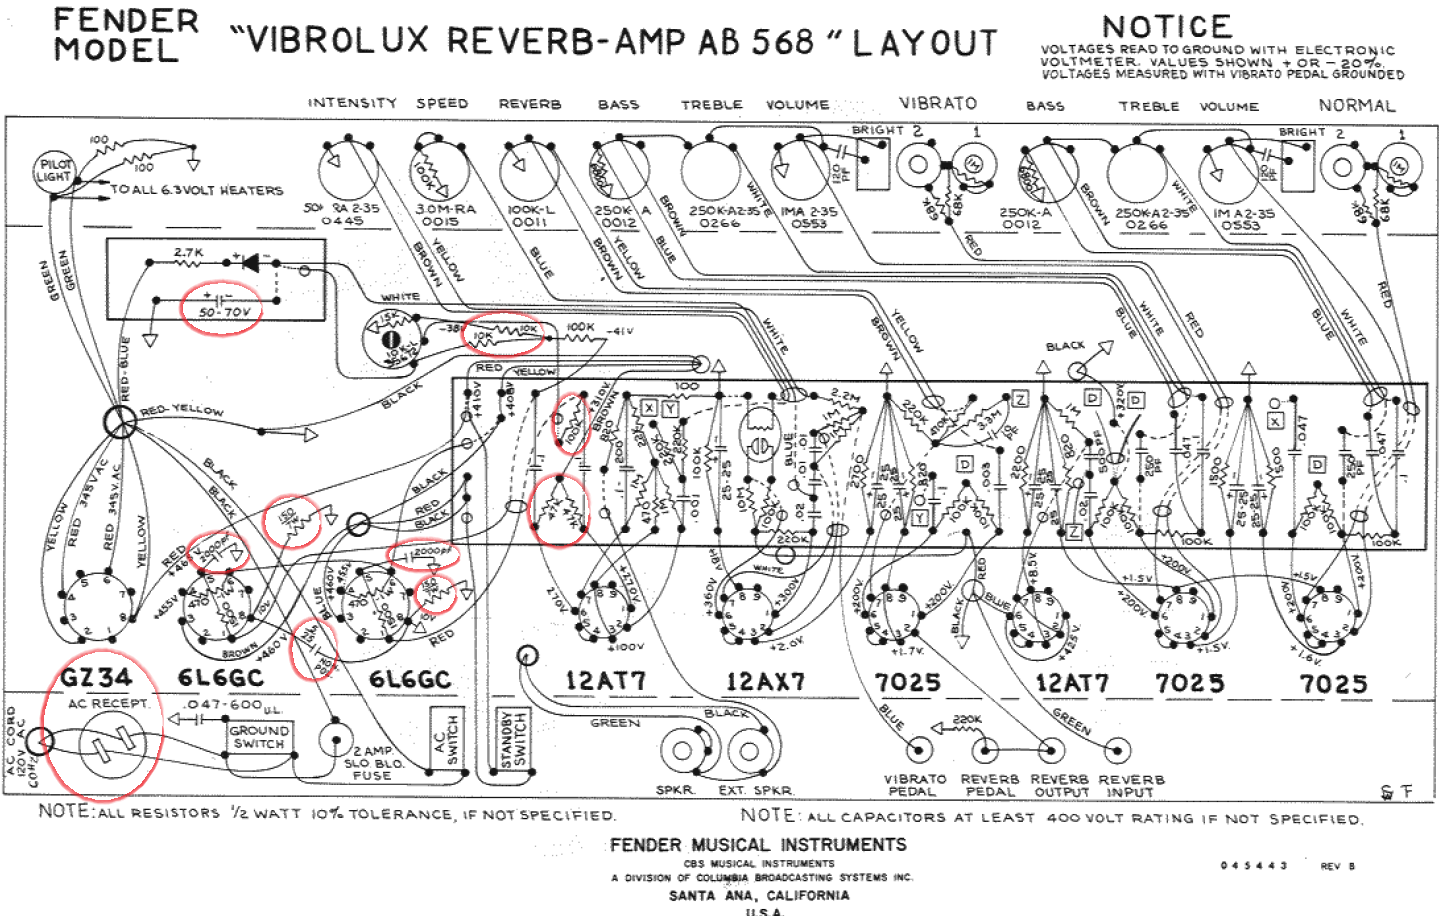 vibrolux layout AB568 aa964 vibrolux wiring diagram trailer wiring diagram \u2022 wiring diagrams Fender Deluxe Reverb at crackthecode.co